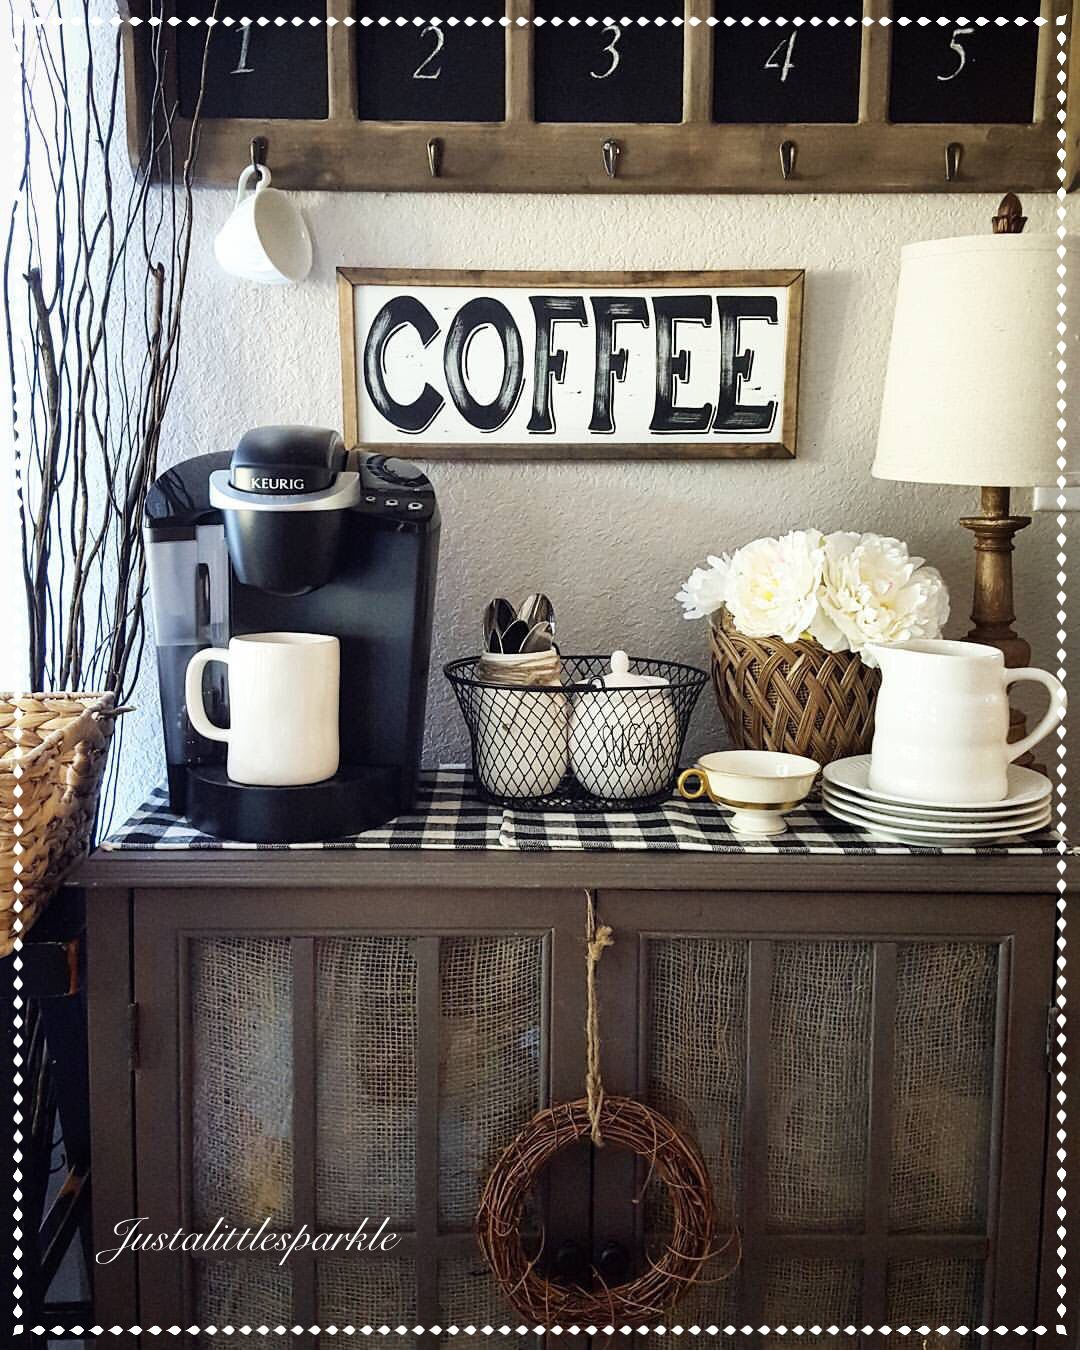 Coffee Decor For Kitchen Resurface Countertops 25 43 Diy Bar Ideas Your Home Stunning Pictures